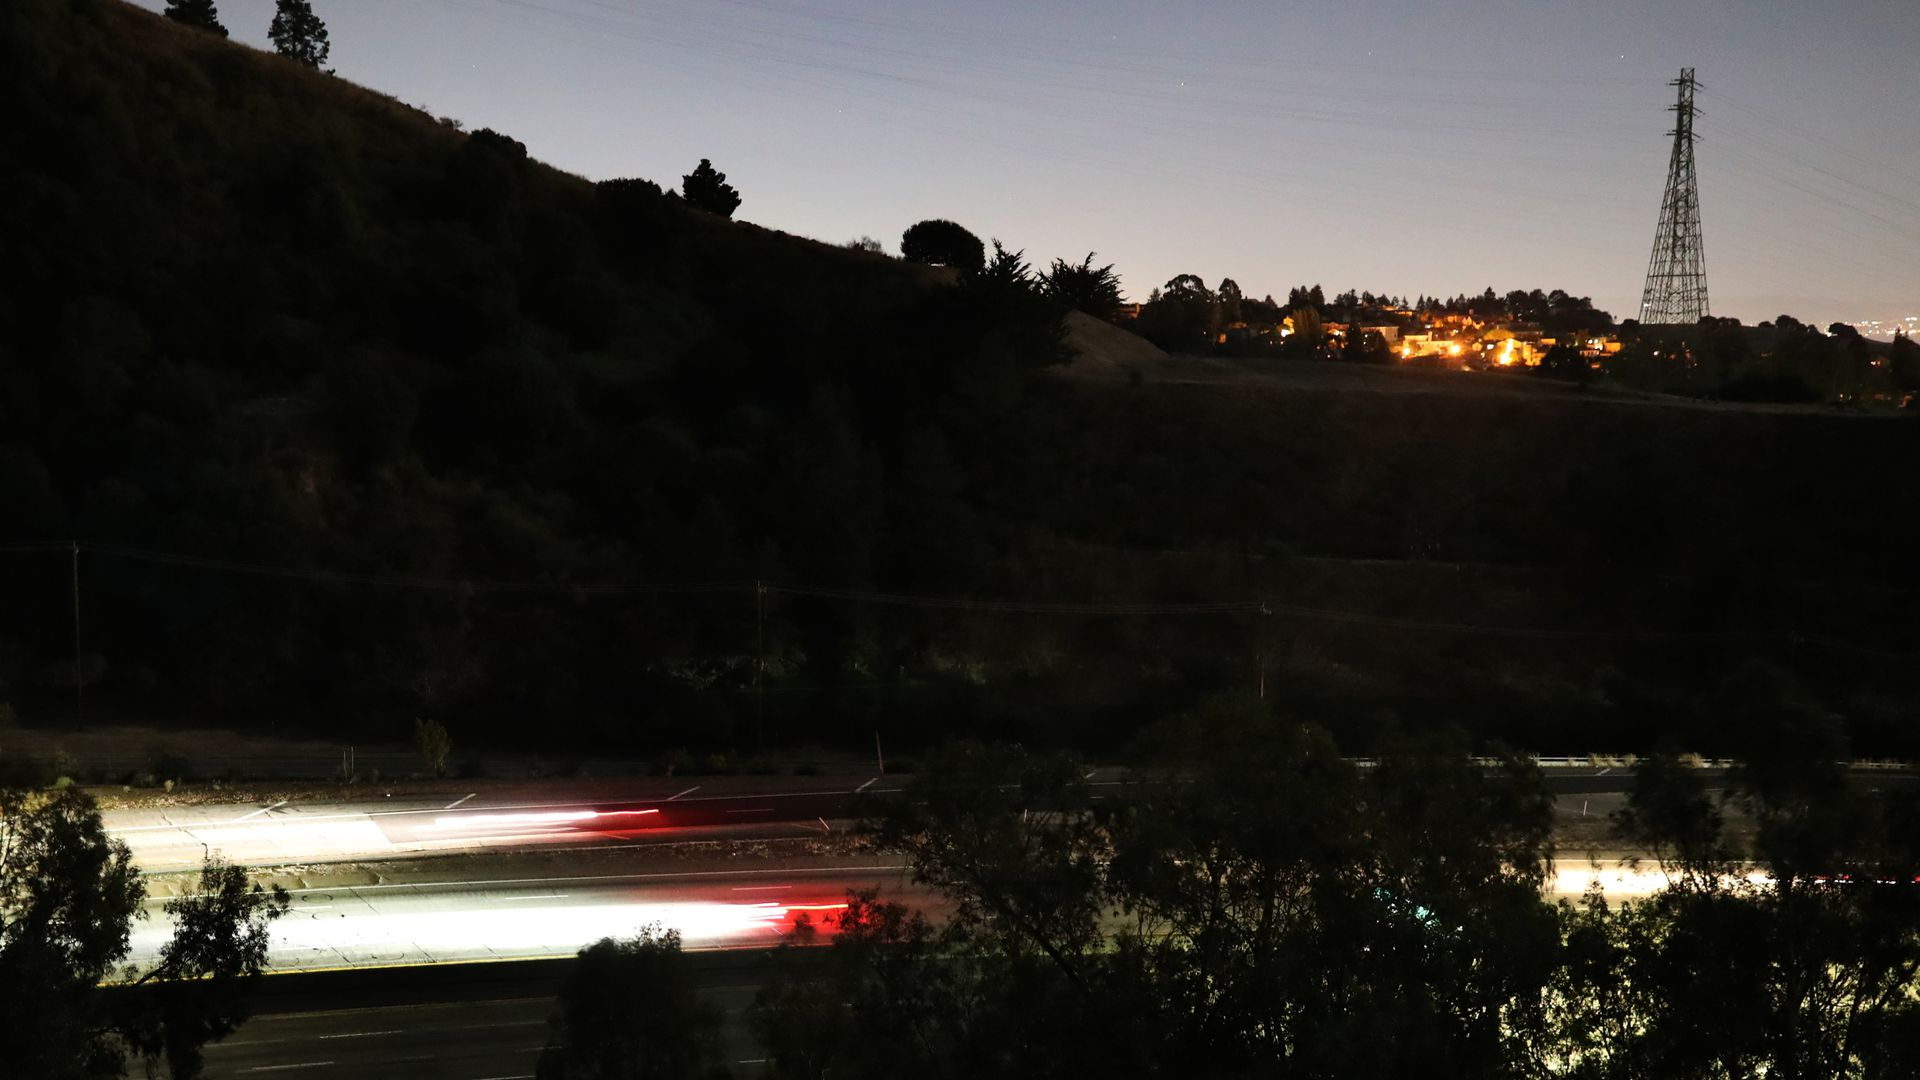 Streaks of lights from vehicles drive along highway 24 during the PG&E power outage in Oakland, Calif